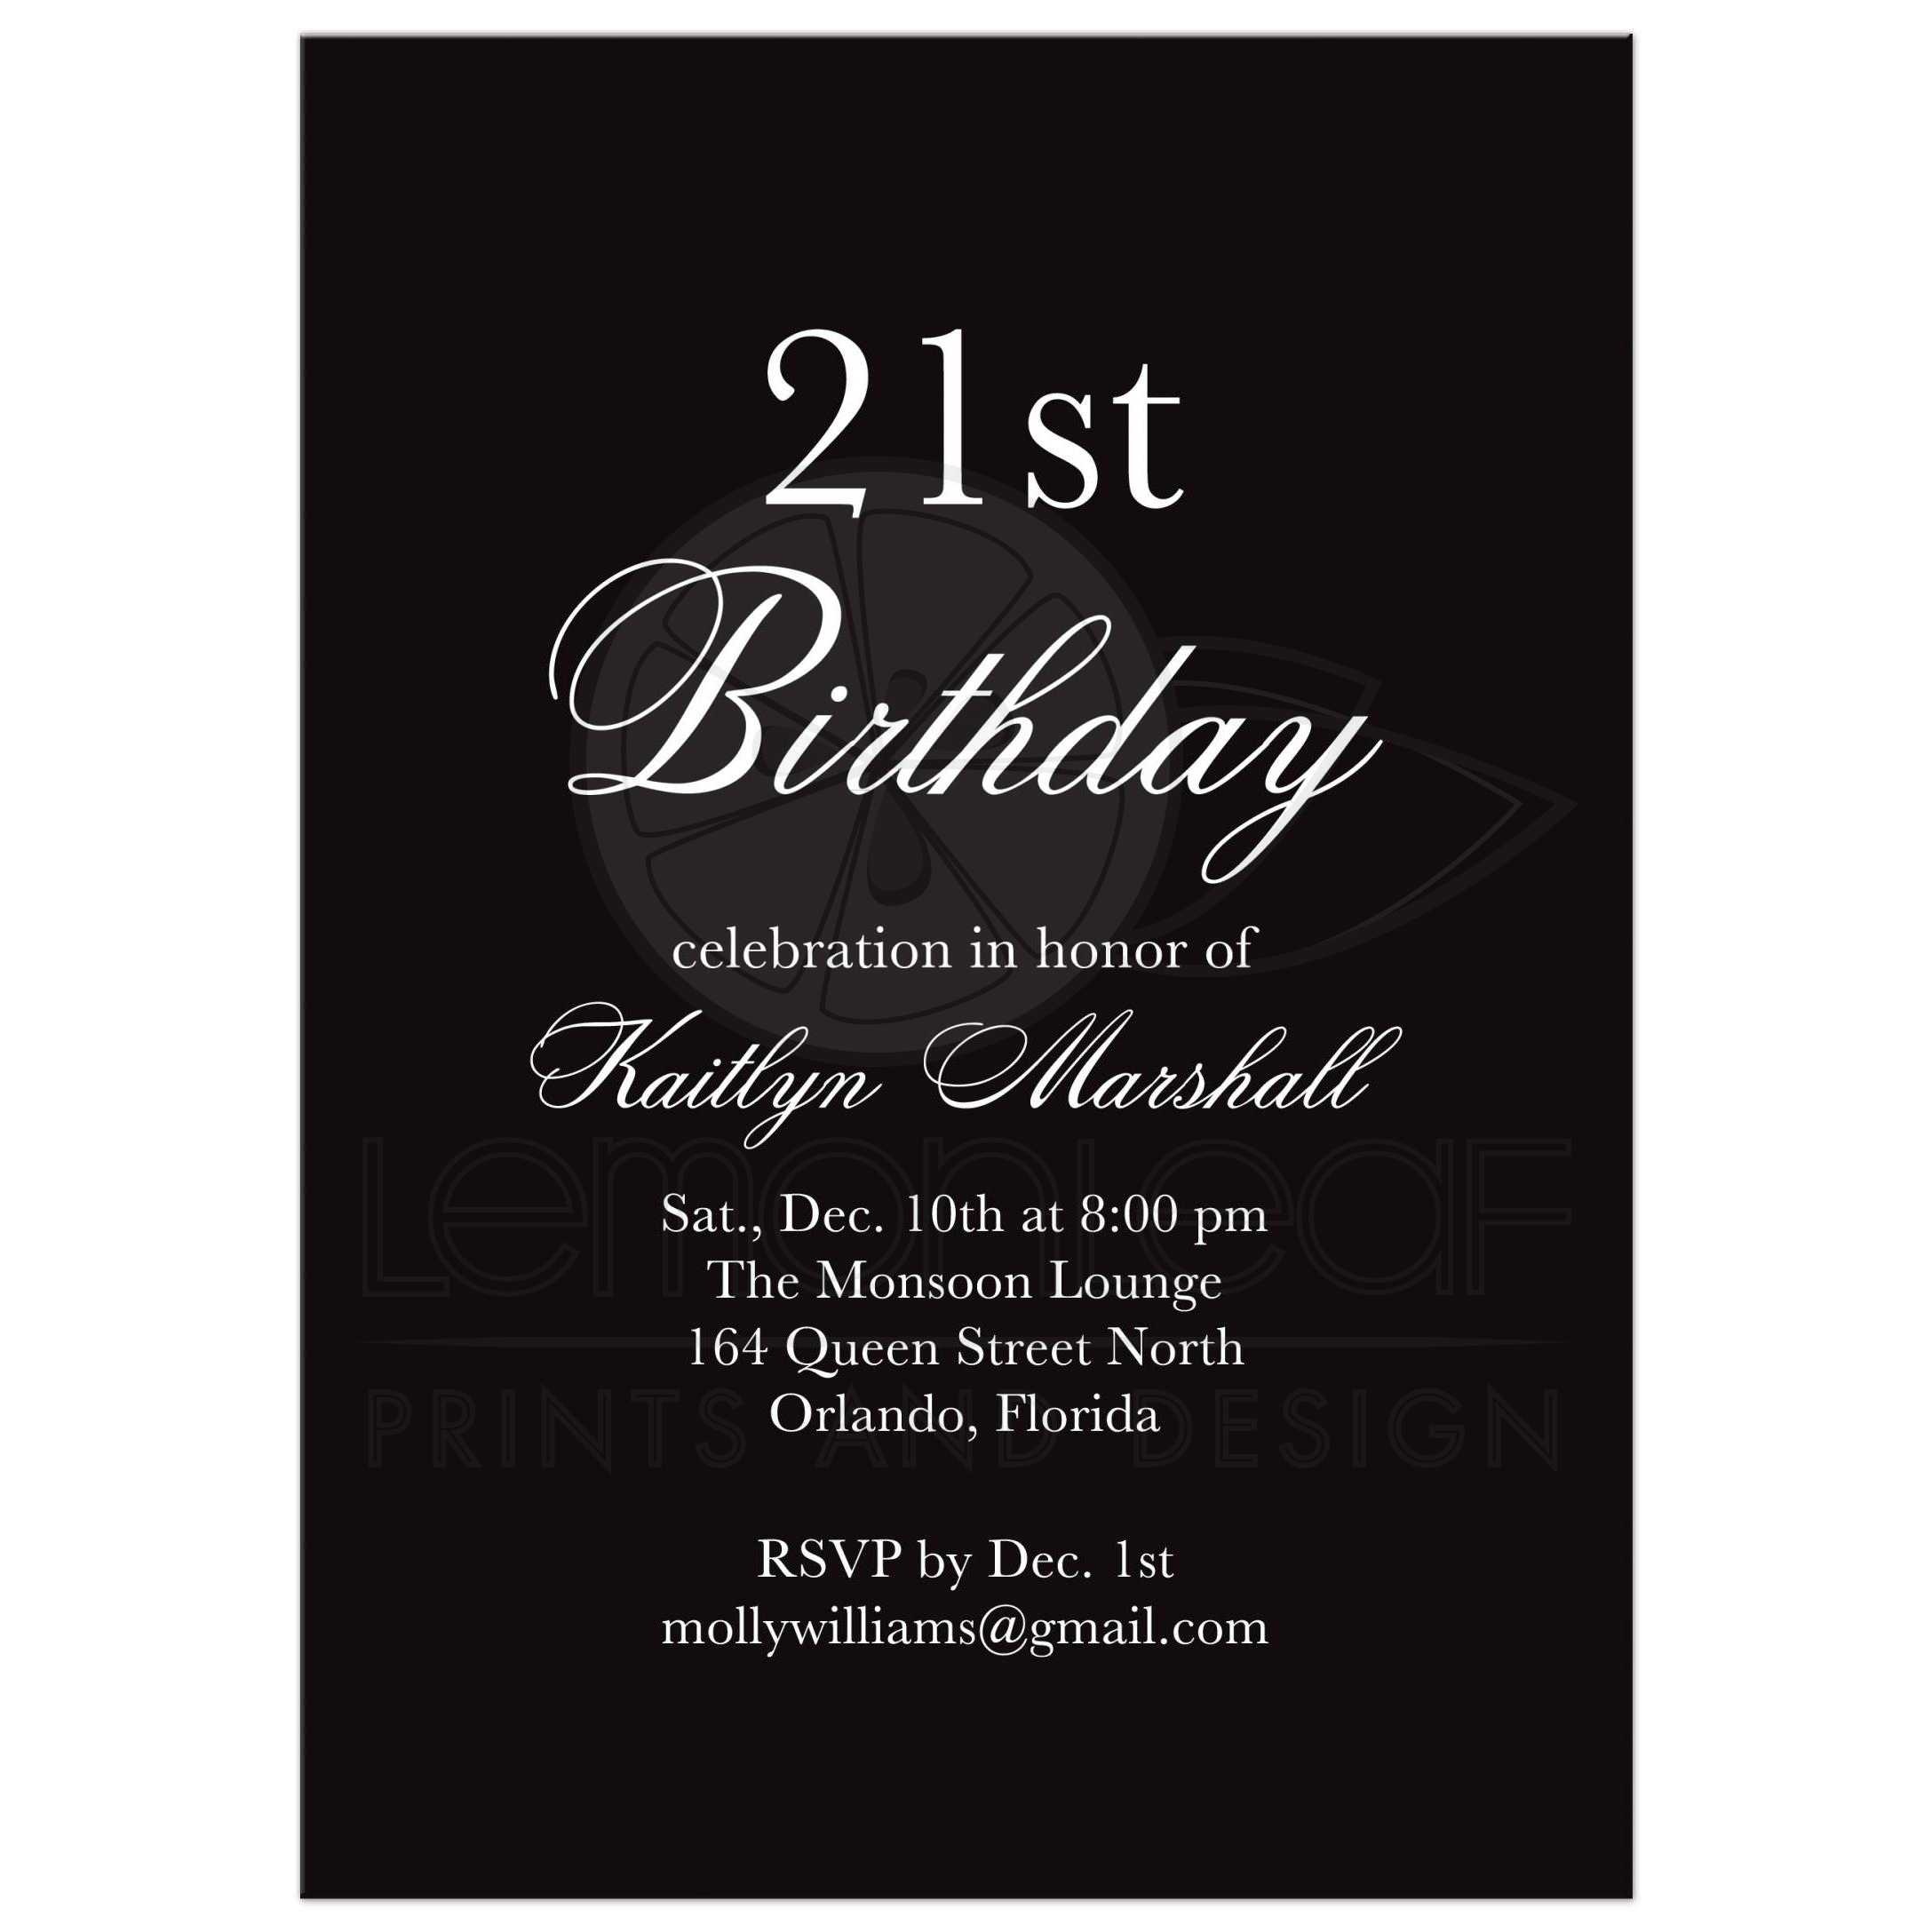 Birthday Invitation Black White Time to Drink Champagne and